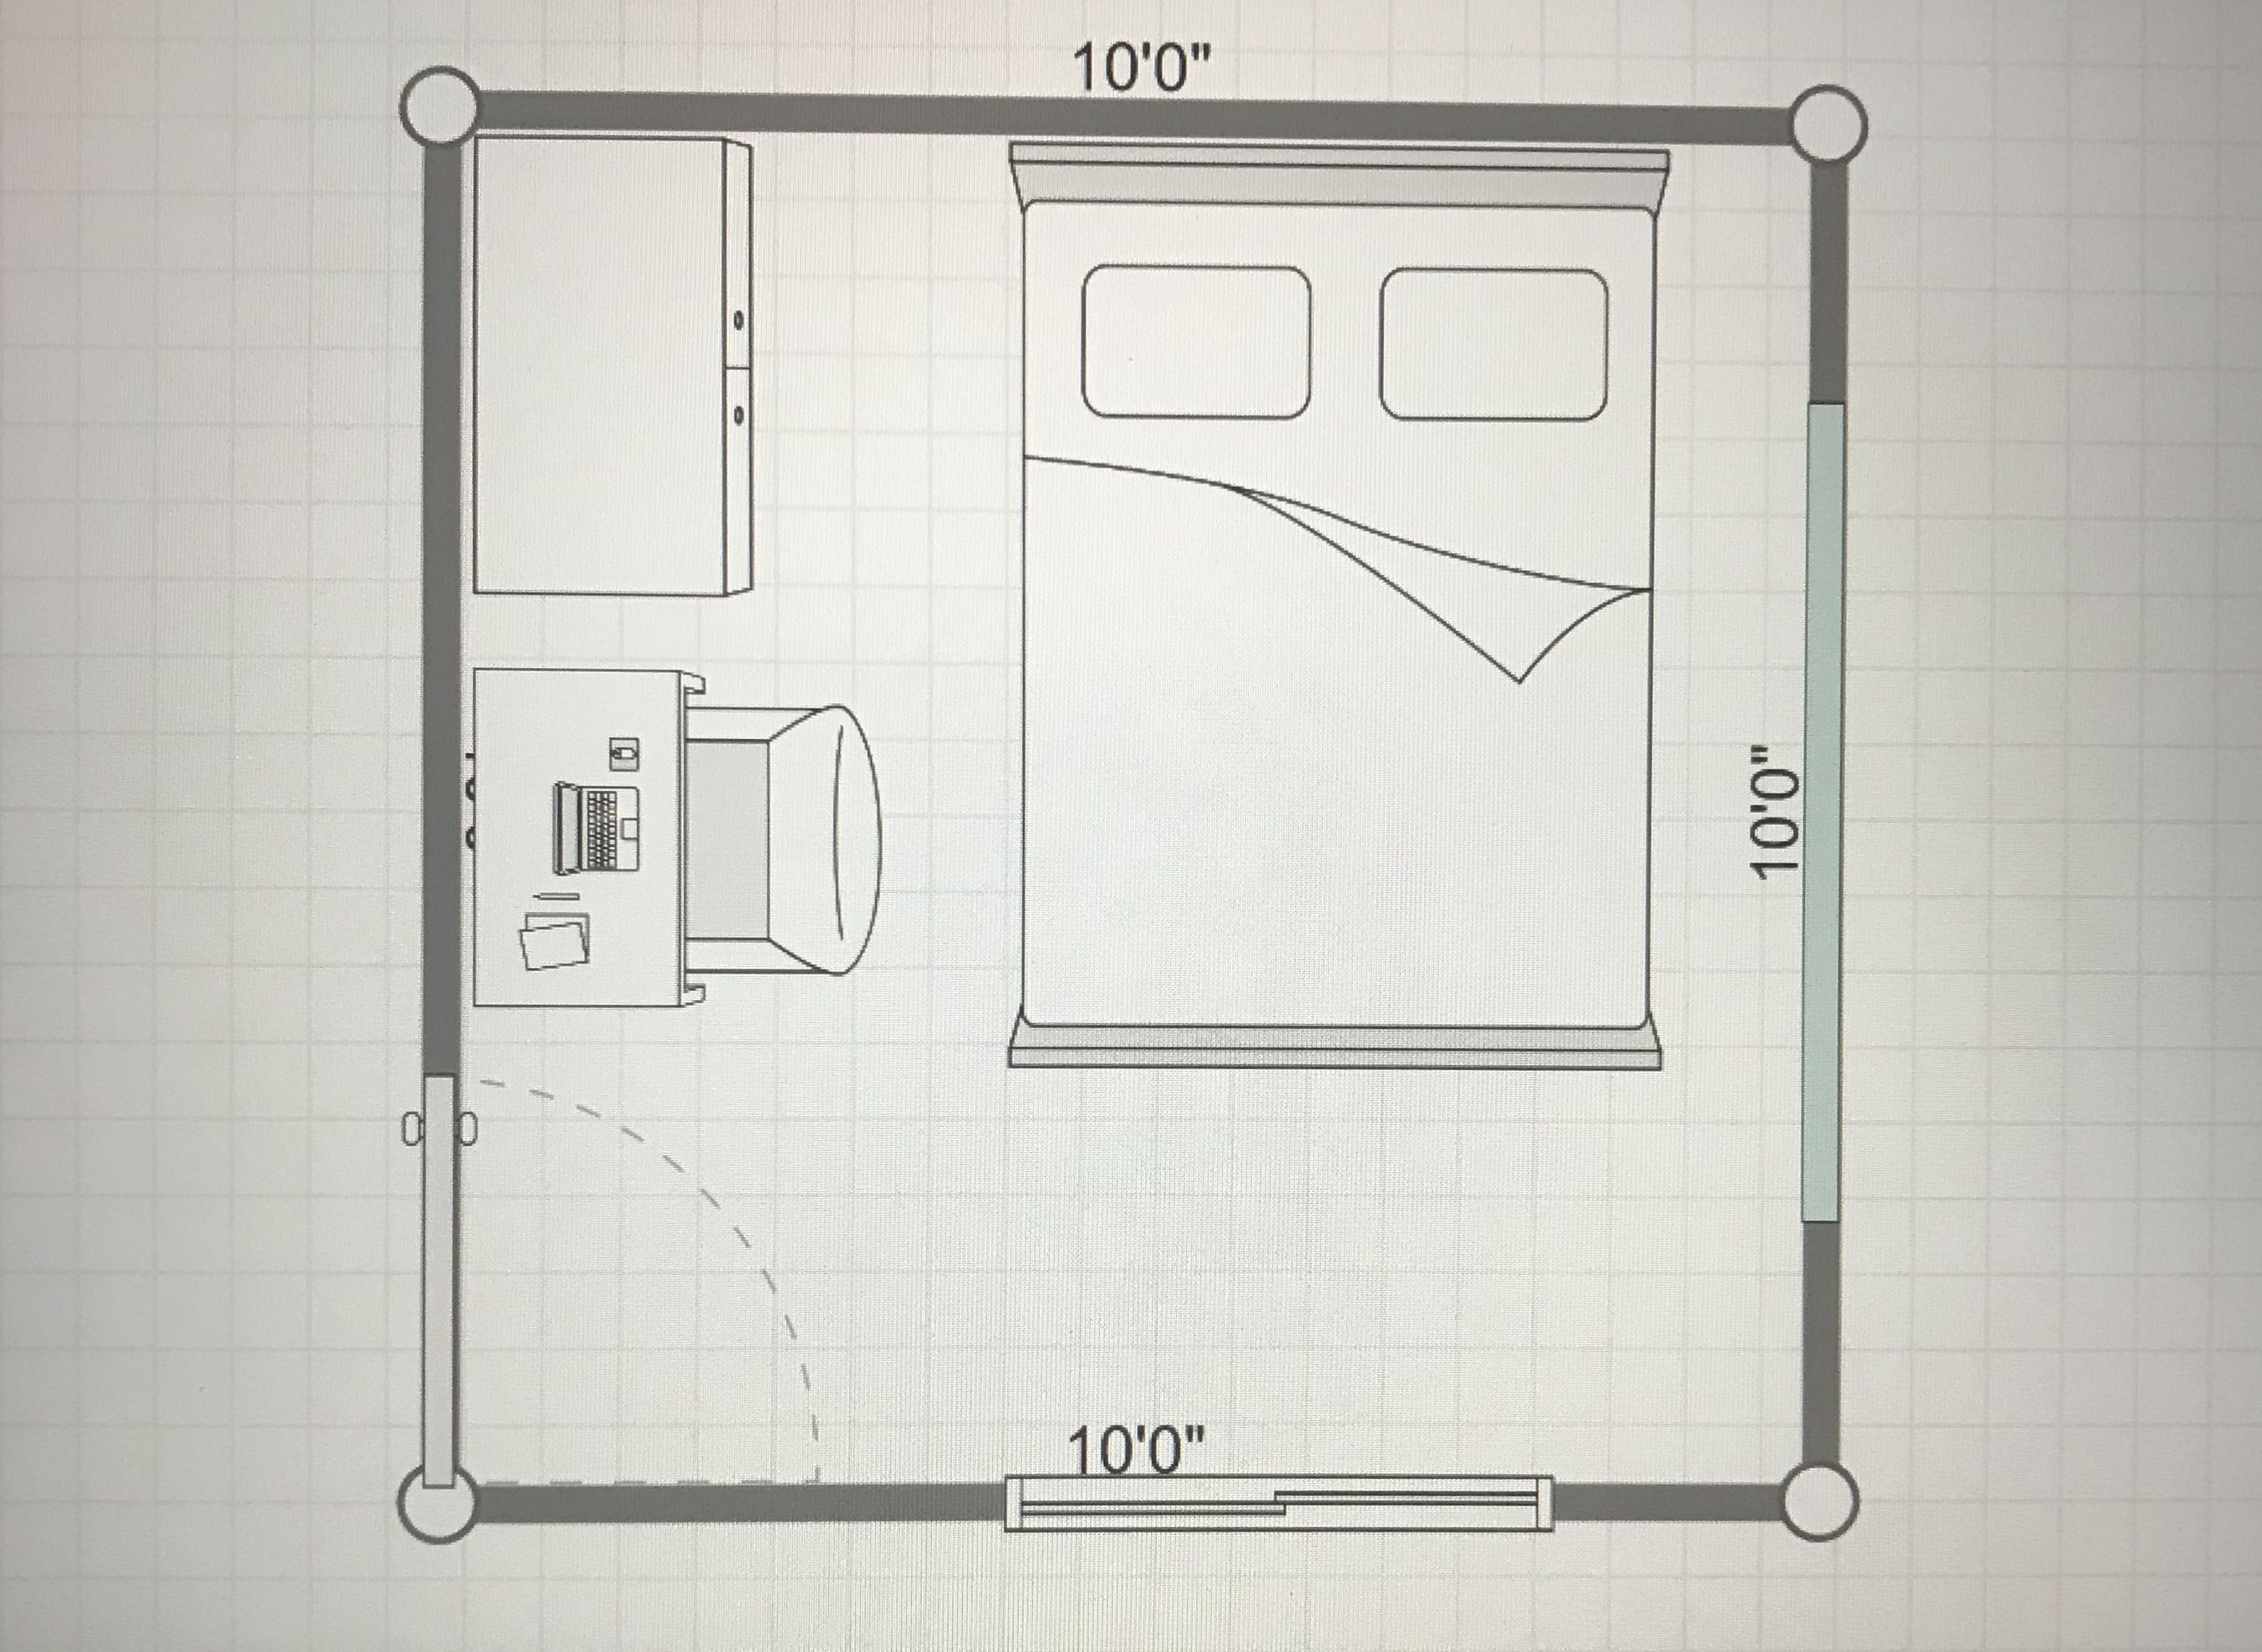 10x10 Room Small Bedroom Layout Bedroom Layouts Simple Bedroom